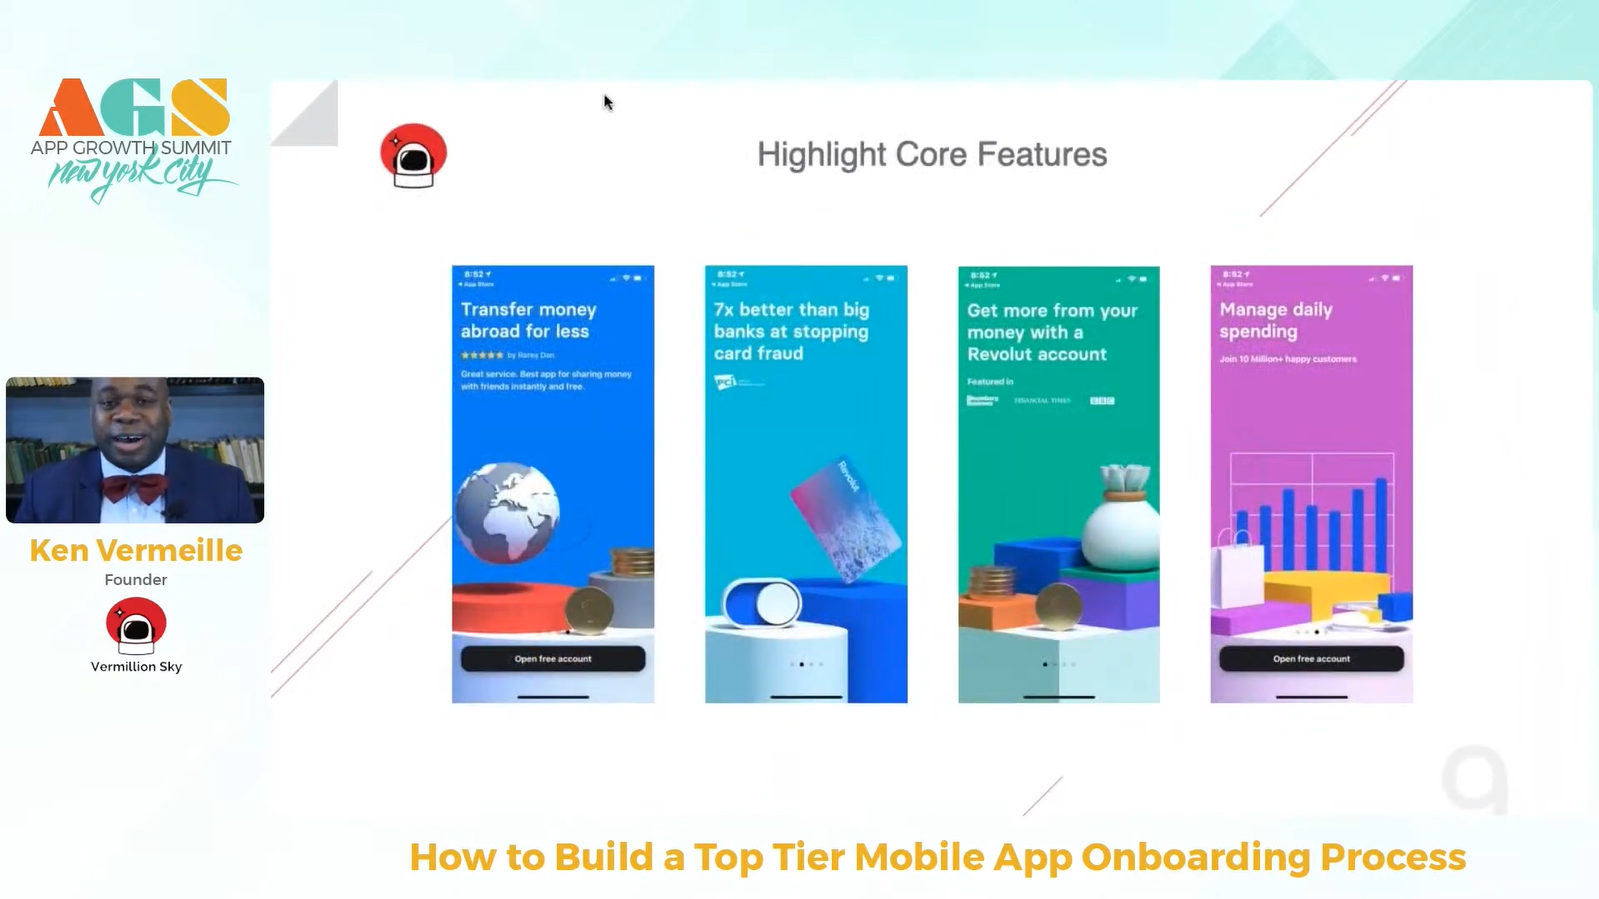 Core features of the app